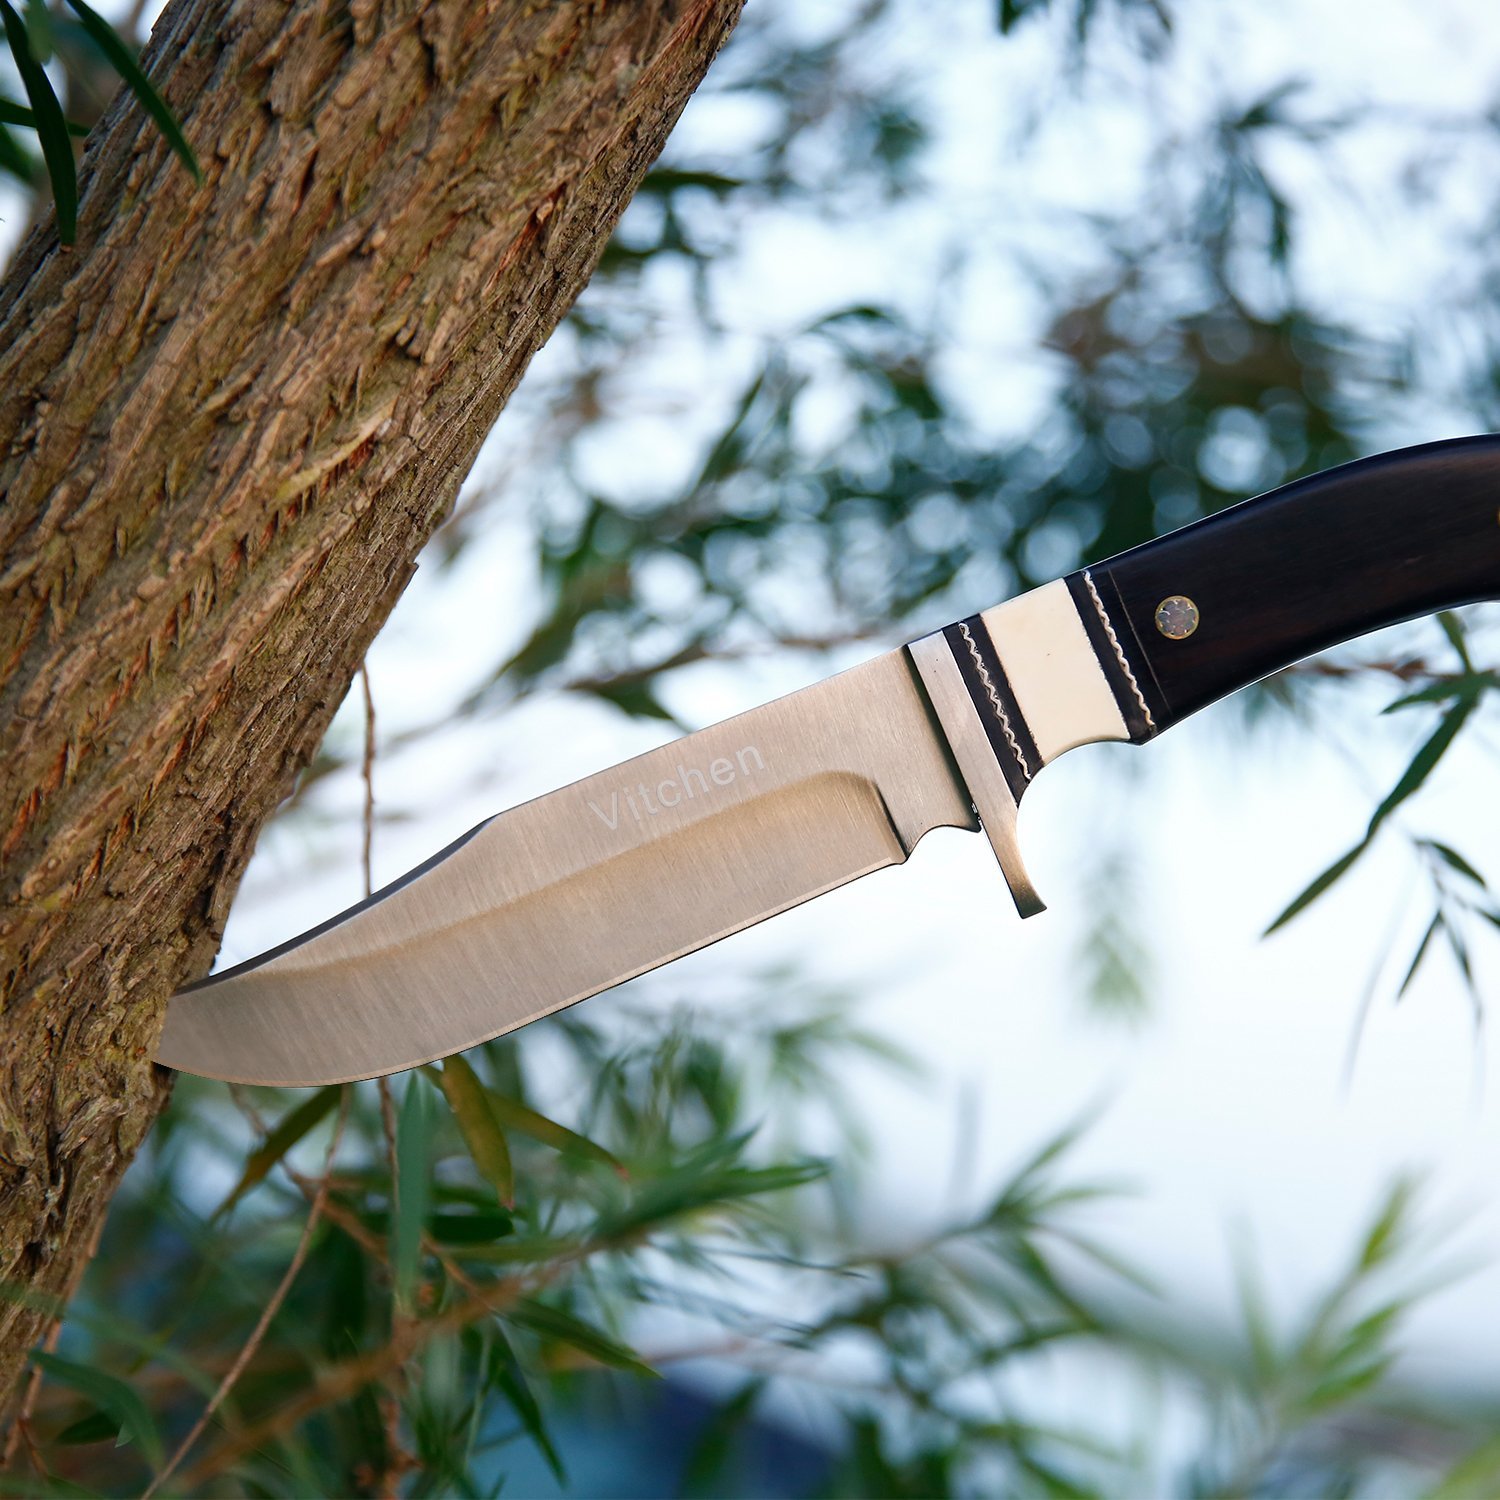 Fixed Blade Knife - Tactical Survival Knife Outdoor Hunting Knife with Leather Sheath, 440 Stainless Steel Blade